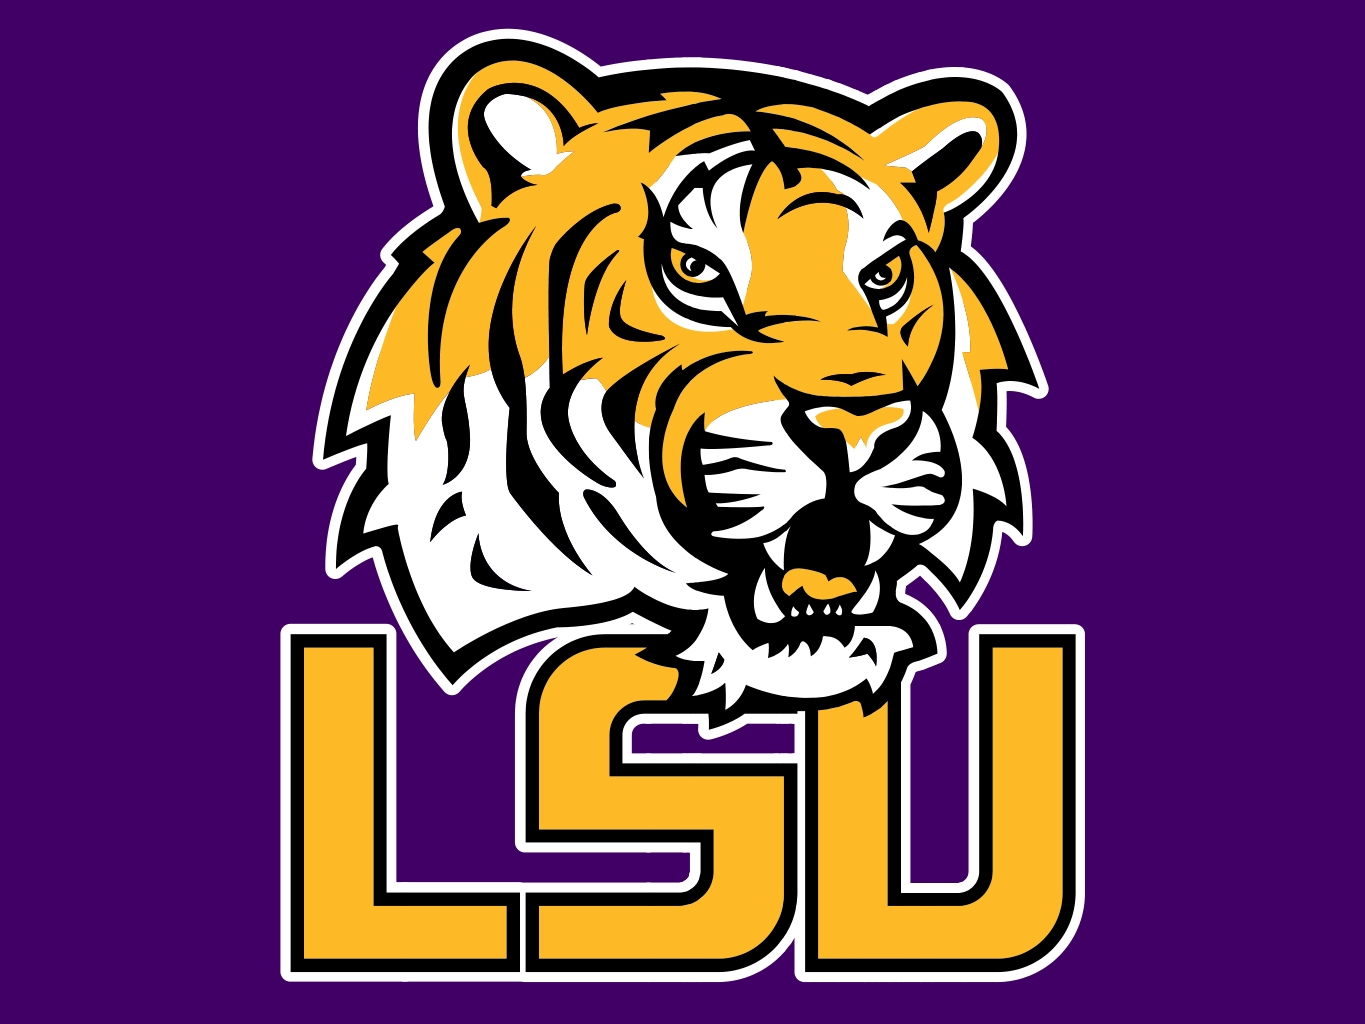 https://wagmsworld.files.wordpress.com/2013/08/lsu_tigers4.jpg avatar